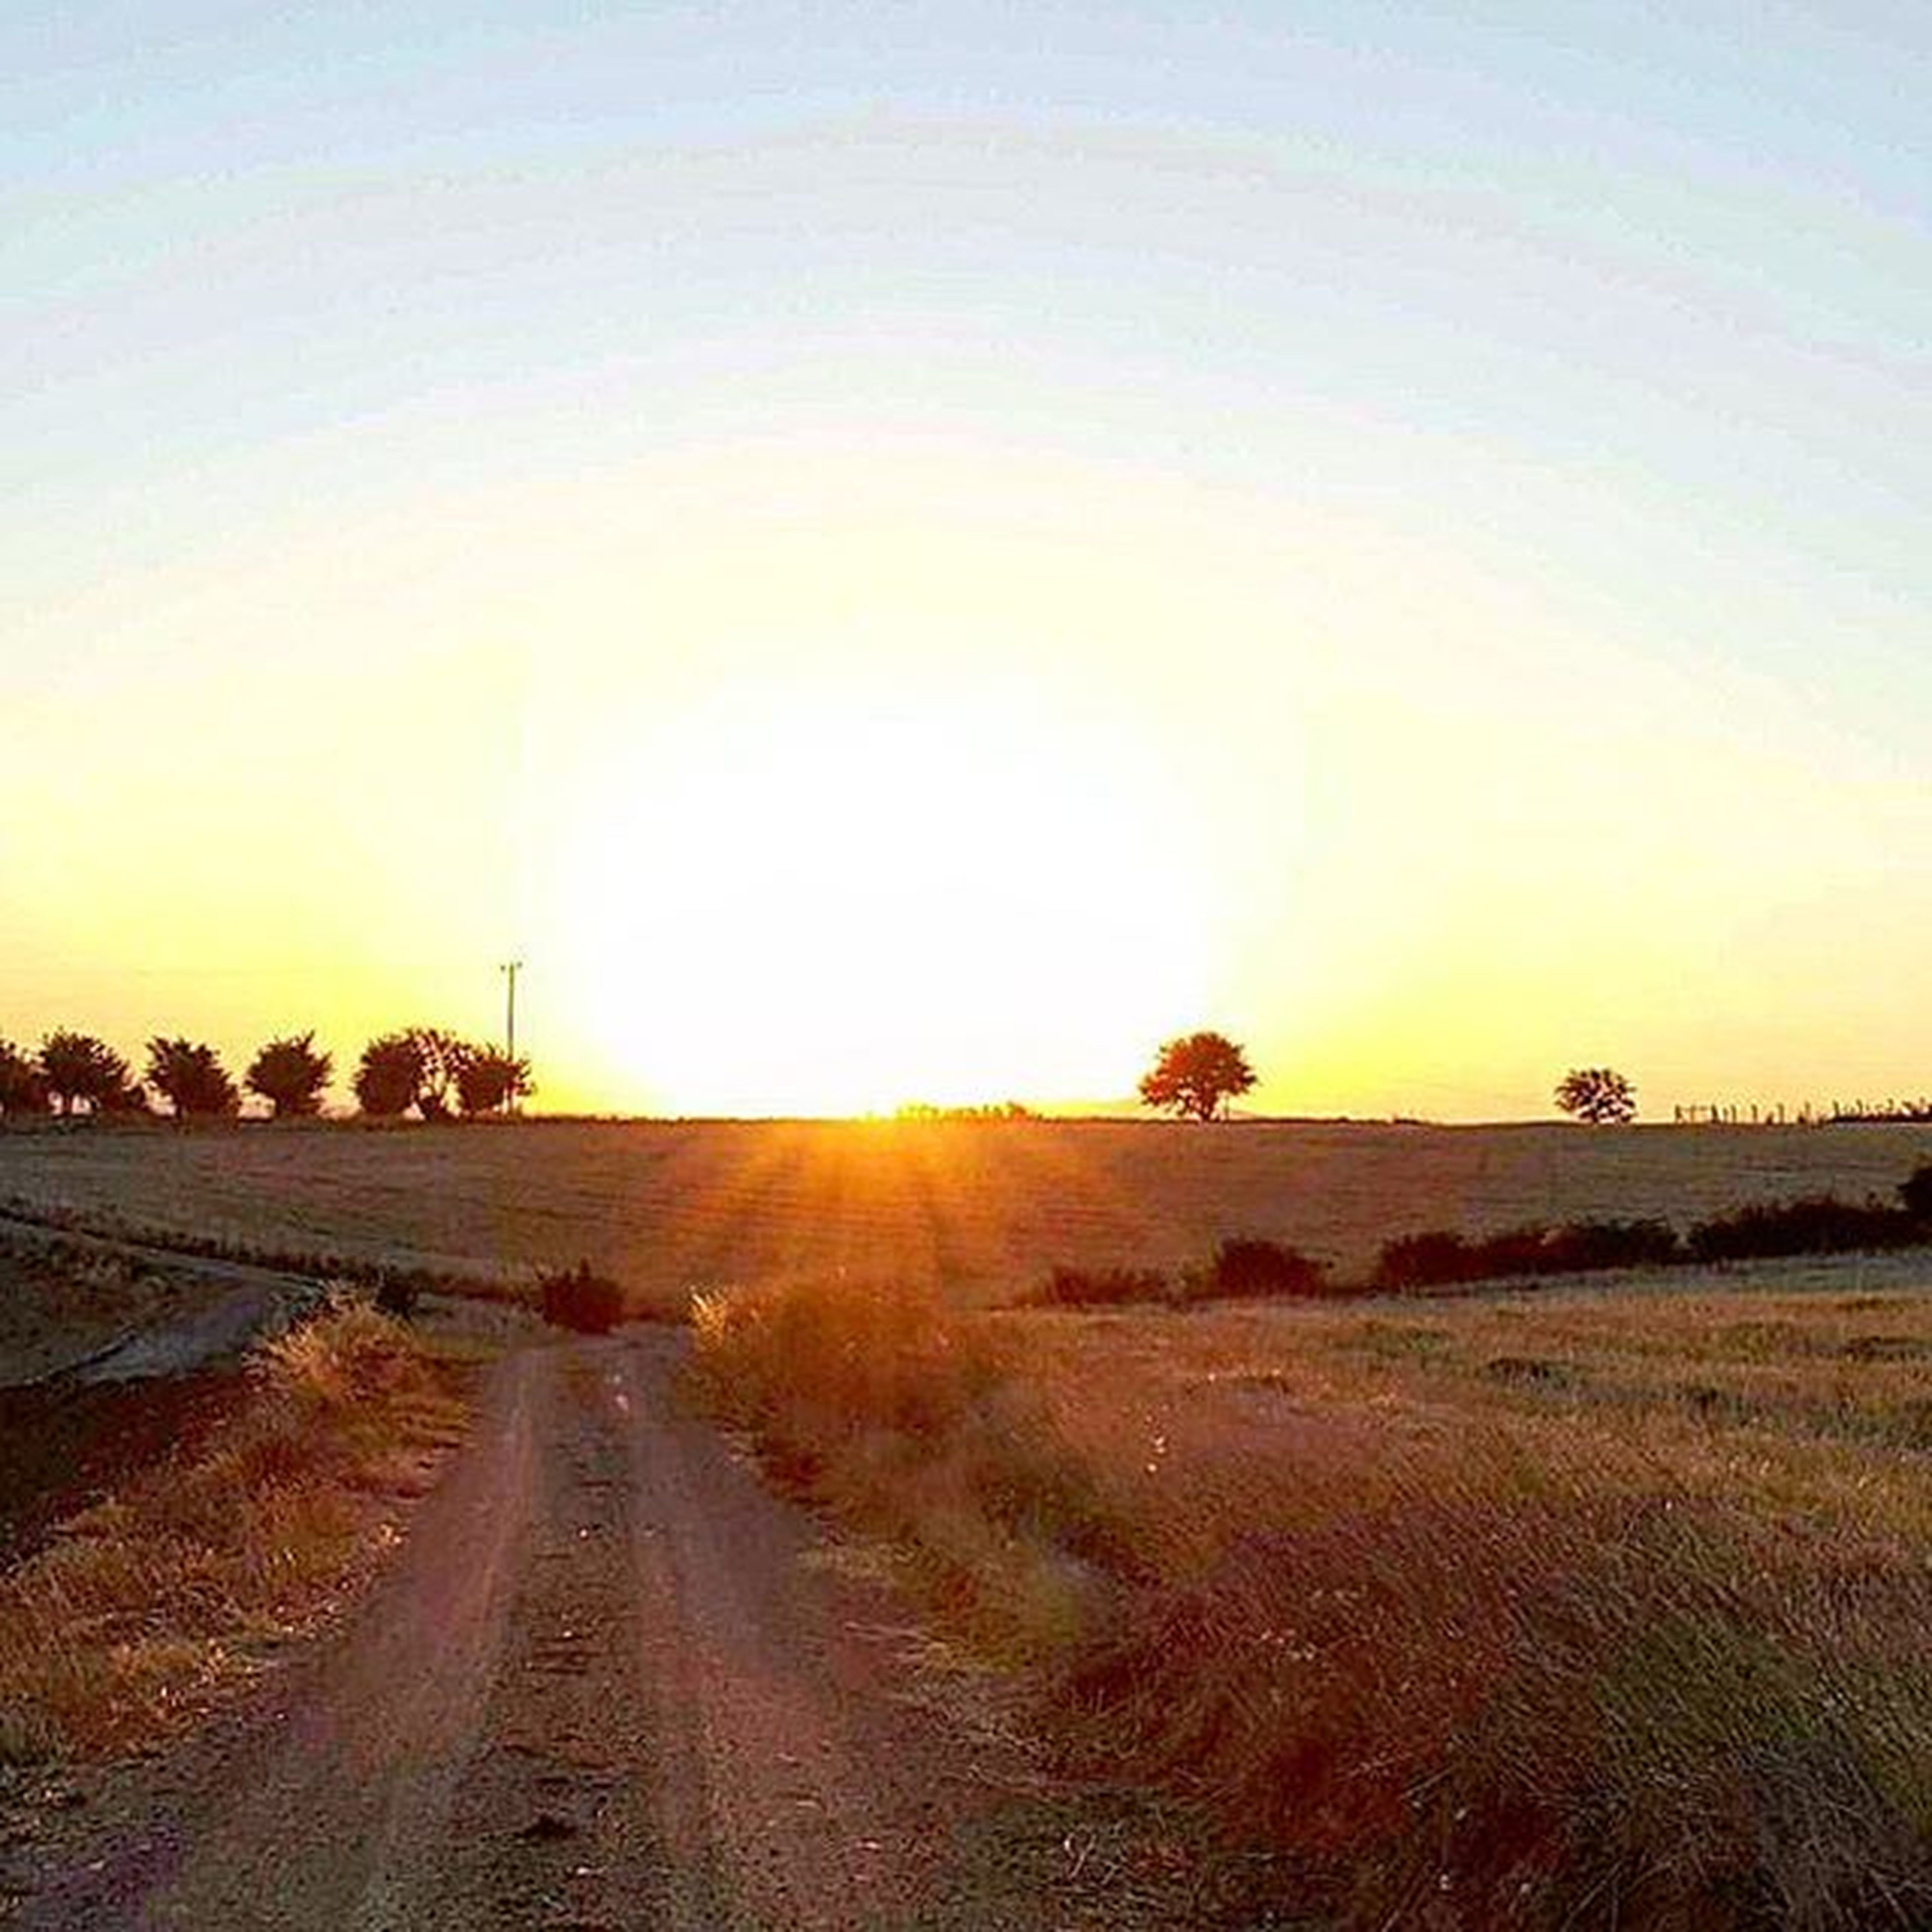 sun, sunset, the way forward, road, tranquil scene, tranquility, sunlight, diminishing perspective, scenics, transportation, vanishing point, clear sky, sunbeam, nature, beauty in nature, sky, landscape, water, dirt road, lens flare